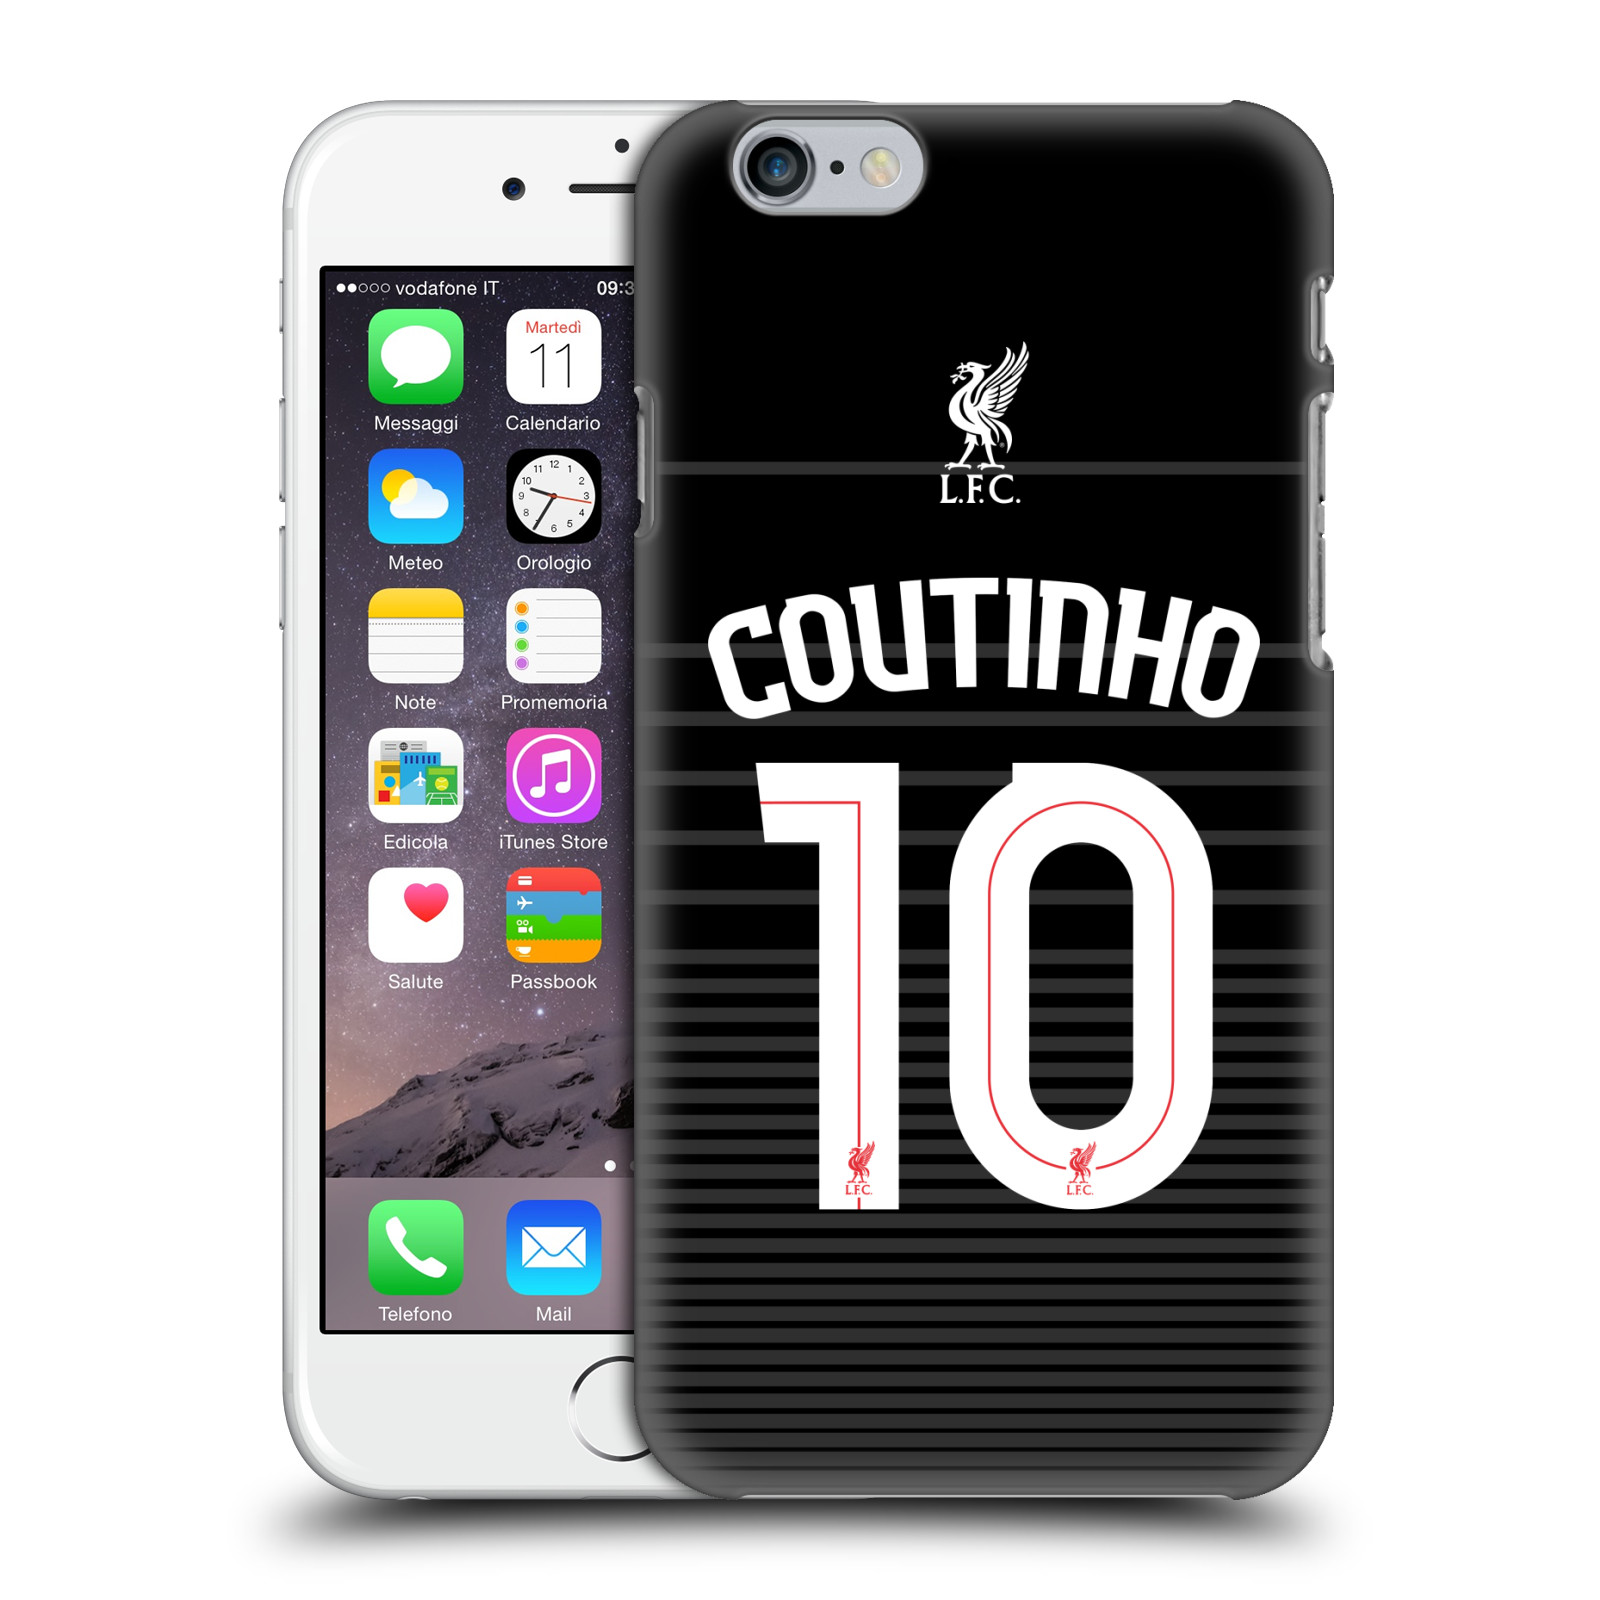 Liverpool FC LFC Shirt 2015/16-Away Shirt Black Coutinho